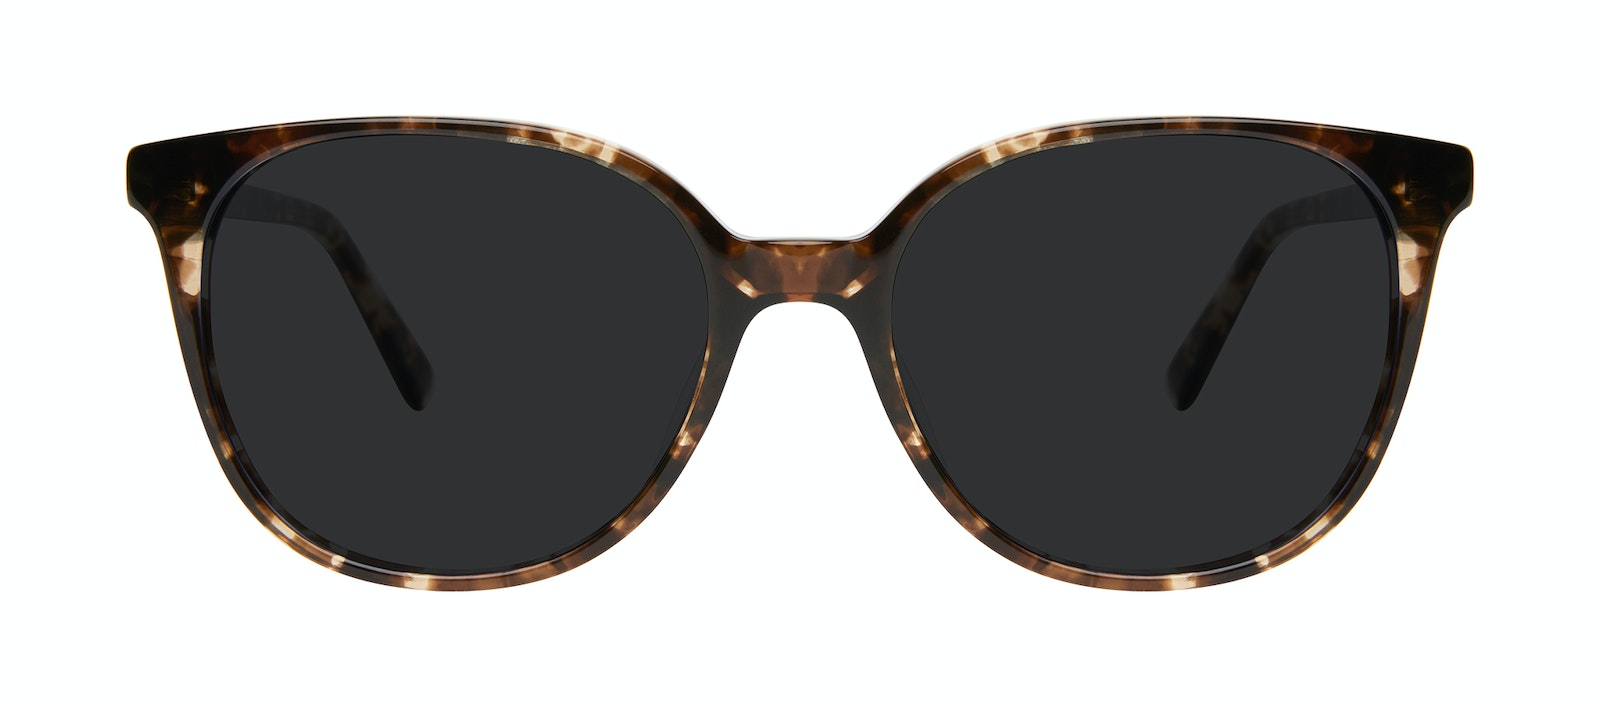 Affordable Fashion Glasses Square Sunglasses Women Novel Leopard Front